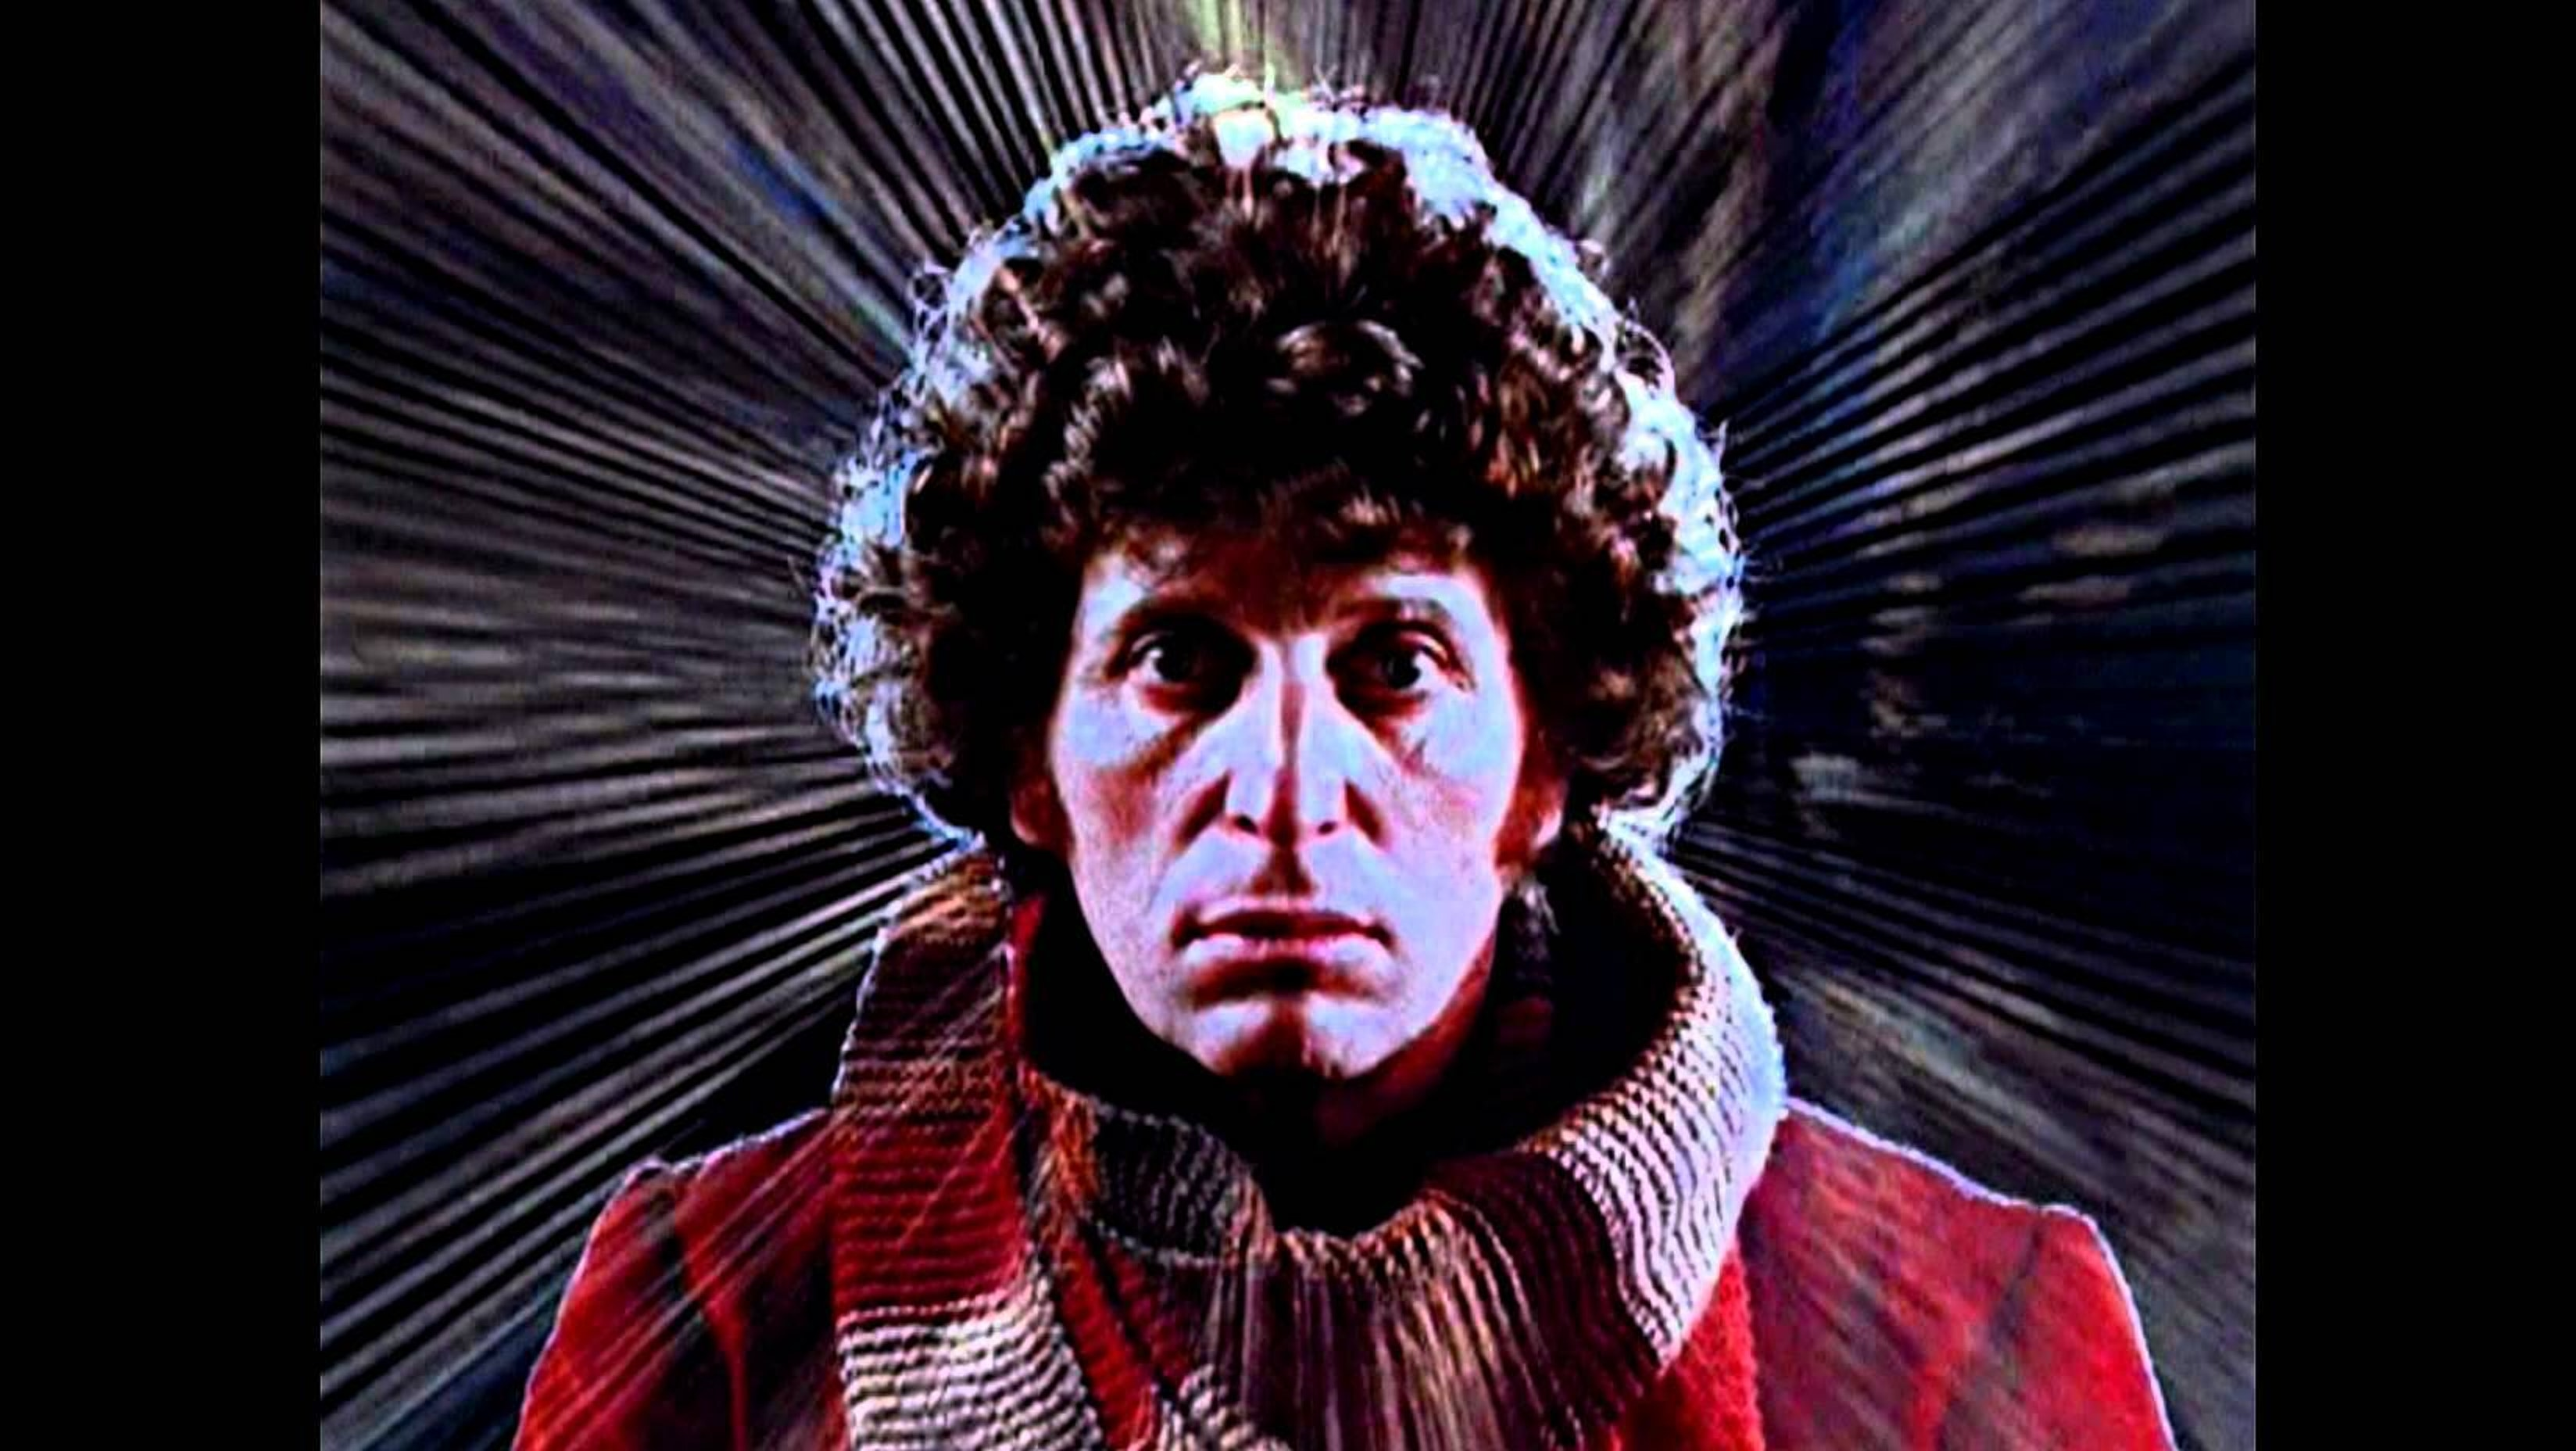 It's Tom Baker!  Your favorite 'Doctor Who' actor!